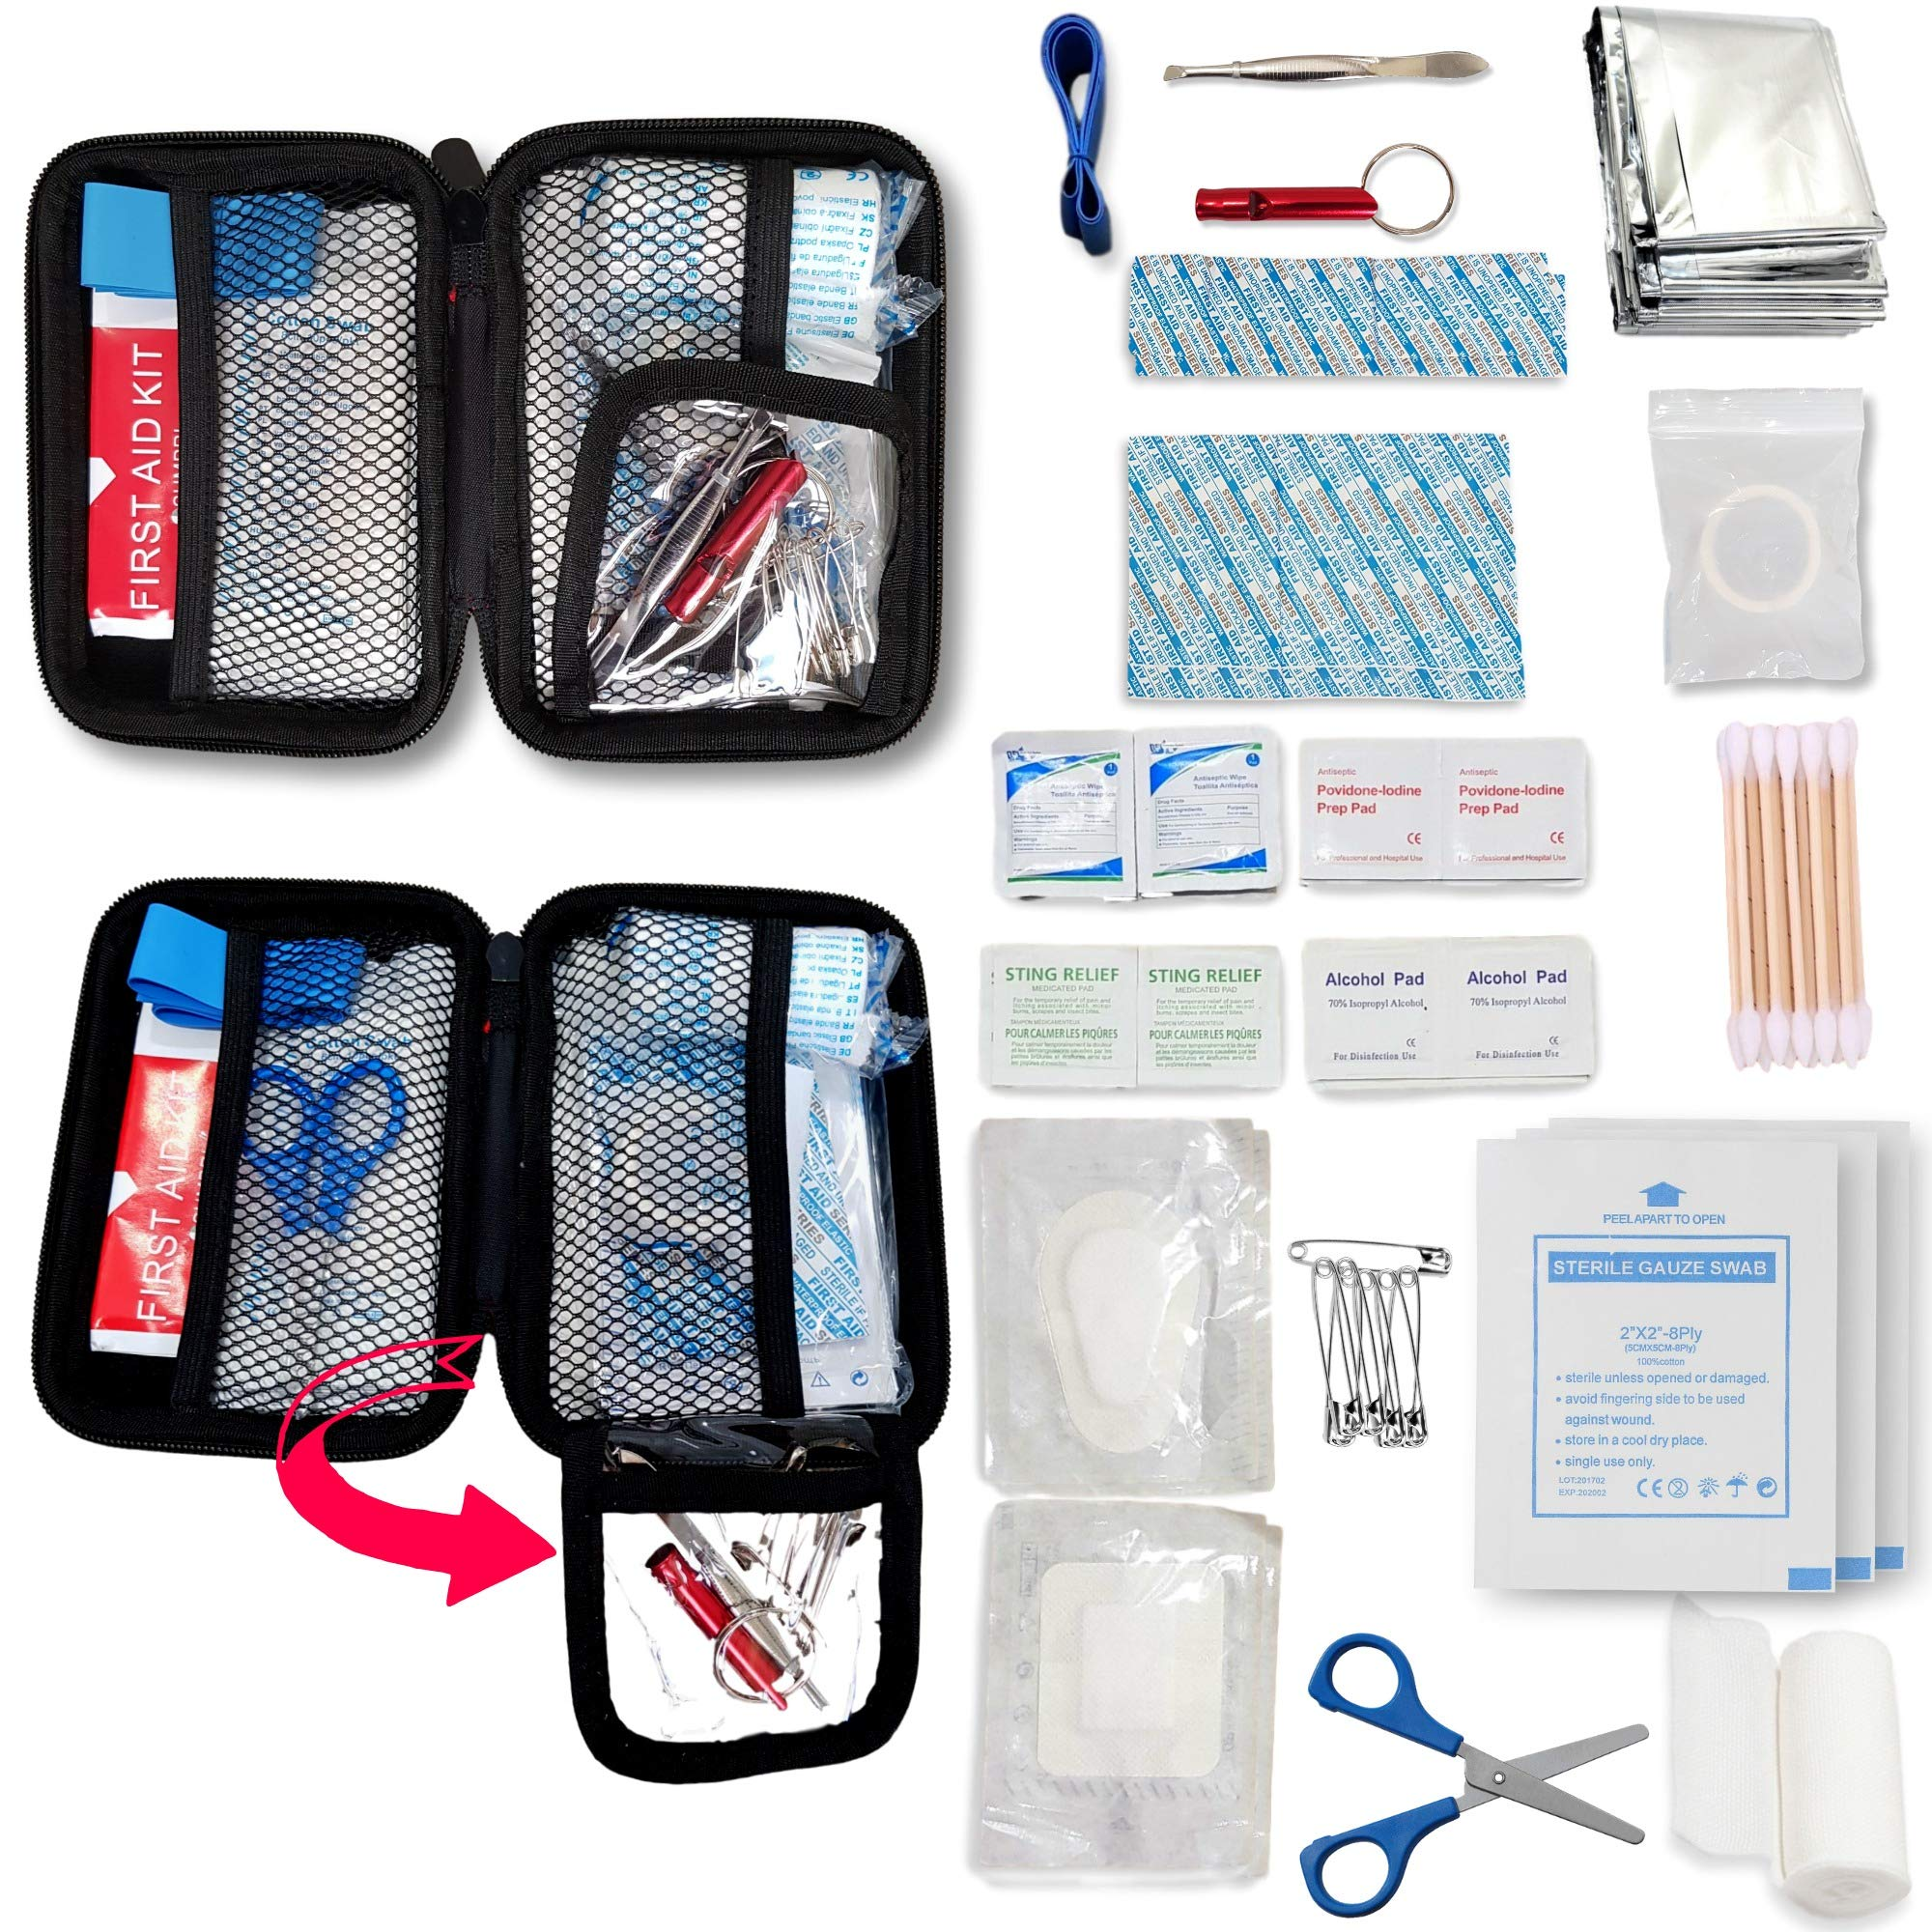 SUMPRI Mini First Aid Kit -Hard Shell Case Camping First Aid Kit -Compact & Lightweight Emergency Medical Supply -Thermal Blanket for Backpacking, Hiking, Travel, Home, Outdoor Or Car -80 Pieces